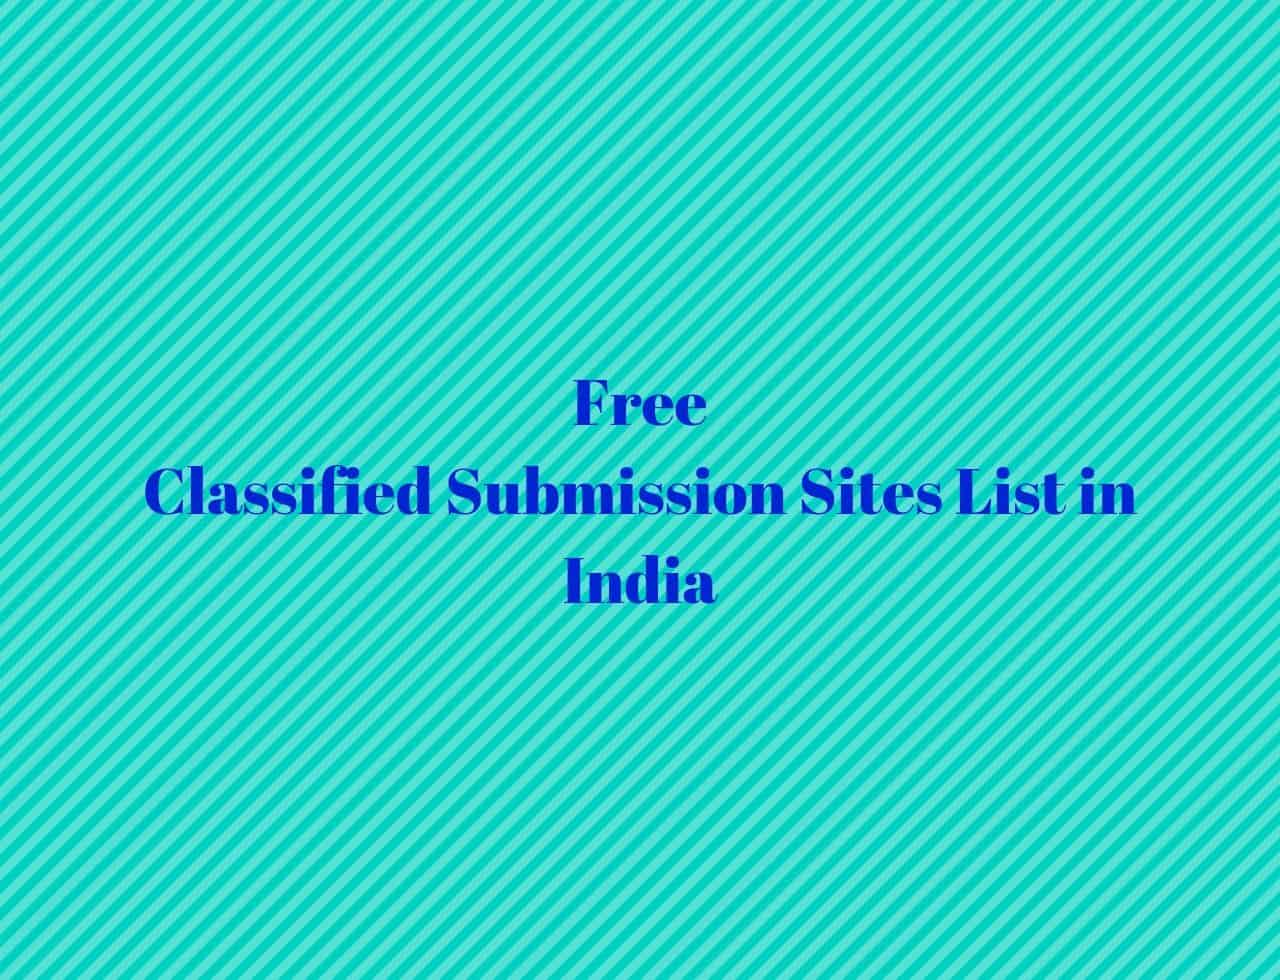 Top Free Classified Submission Sites List in India 2019